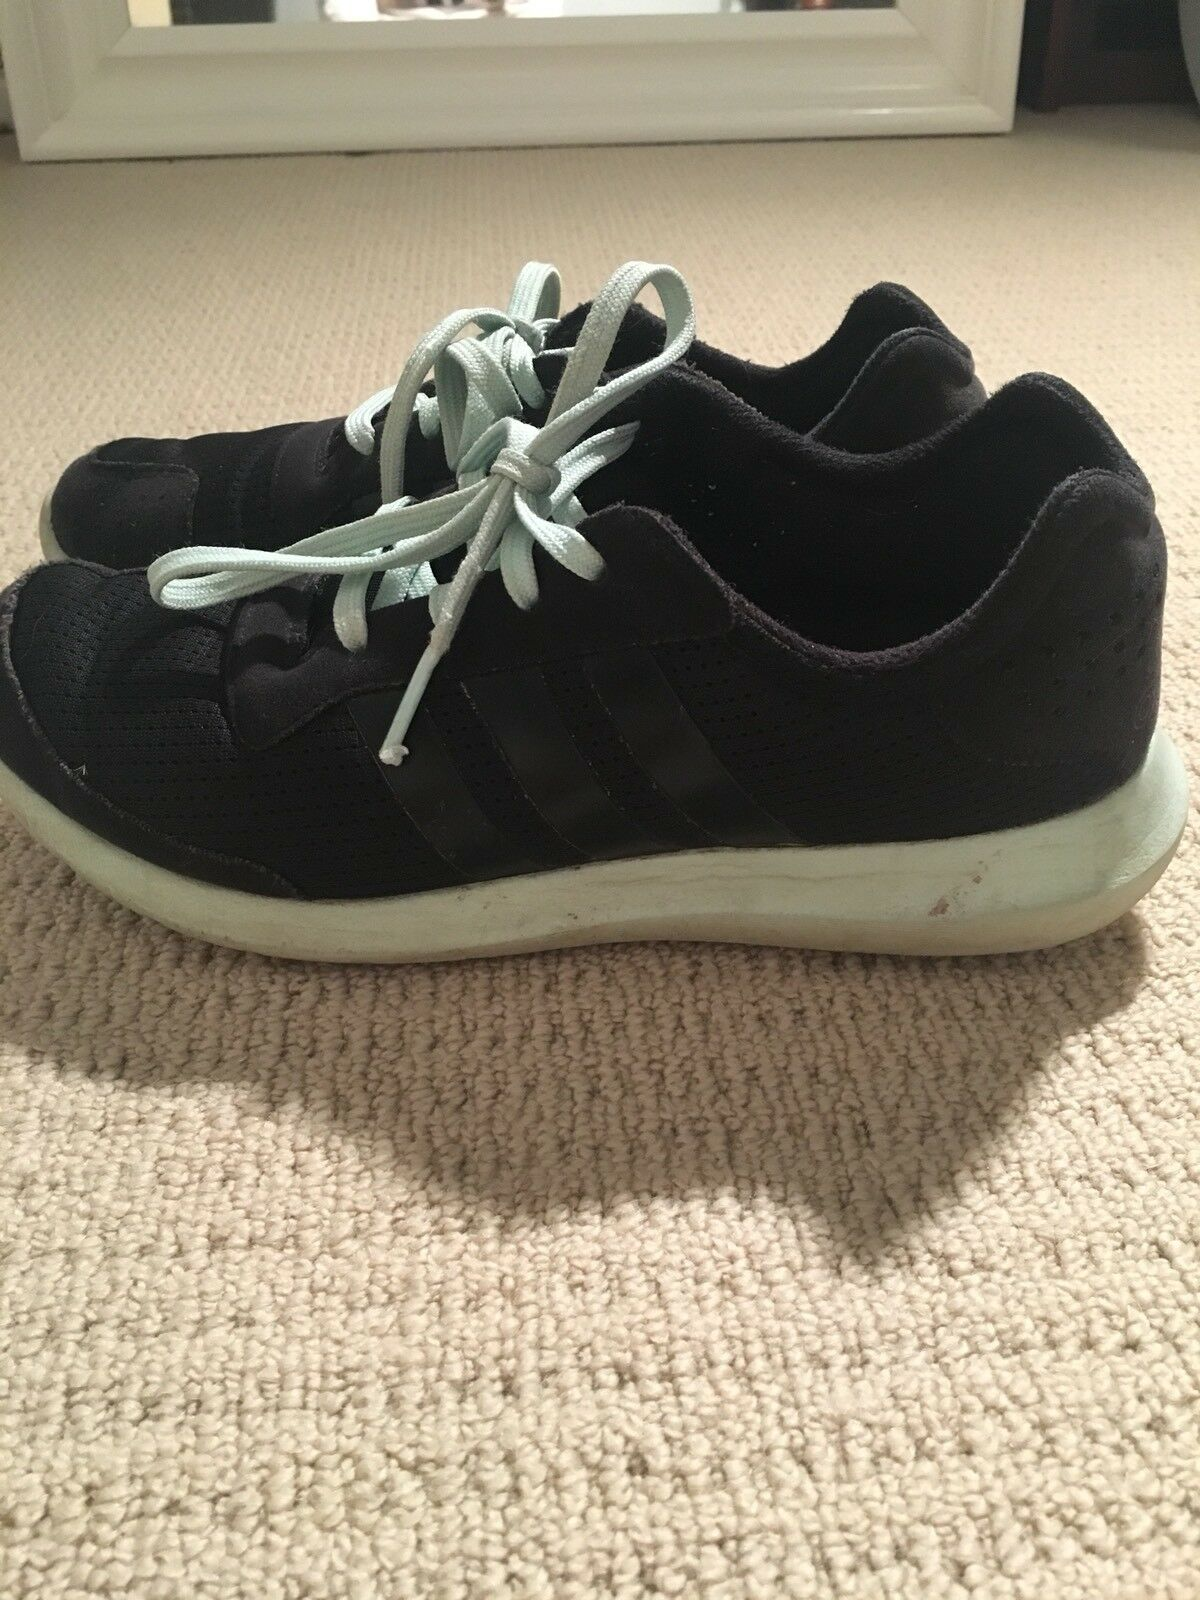 best website 40a30 a1eda Adidas - Black Joggers Sneakers - - - Size US 9.5 d875f9